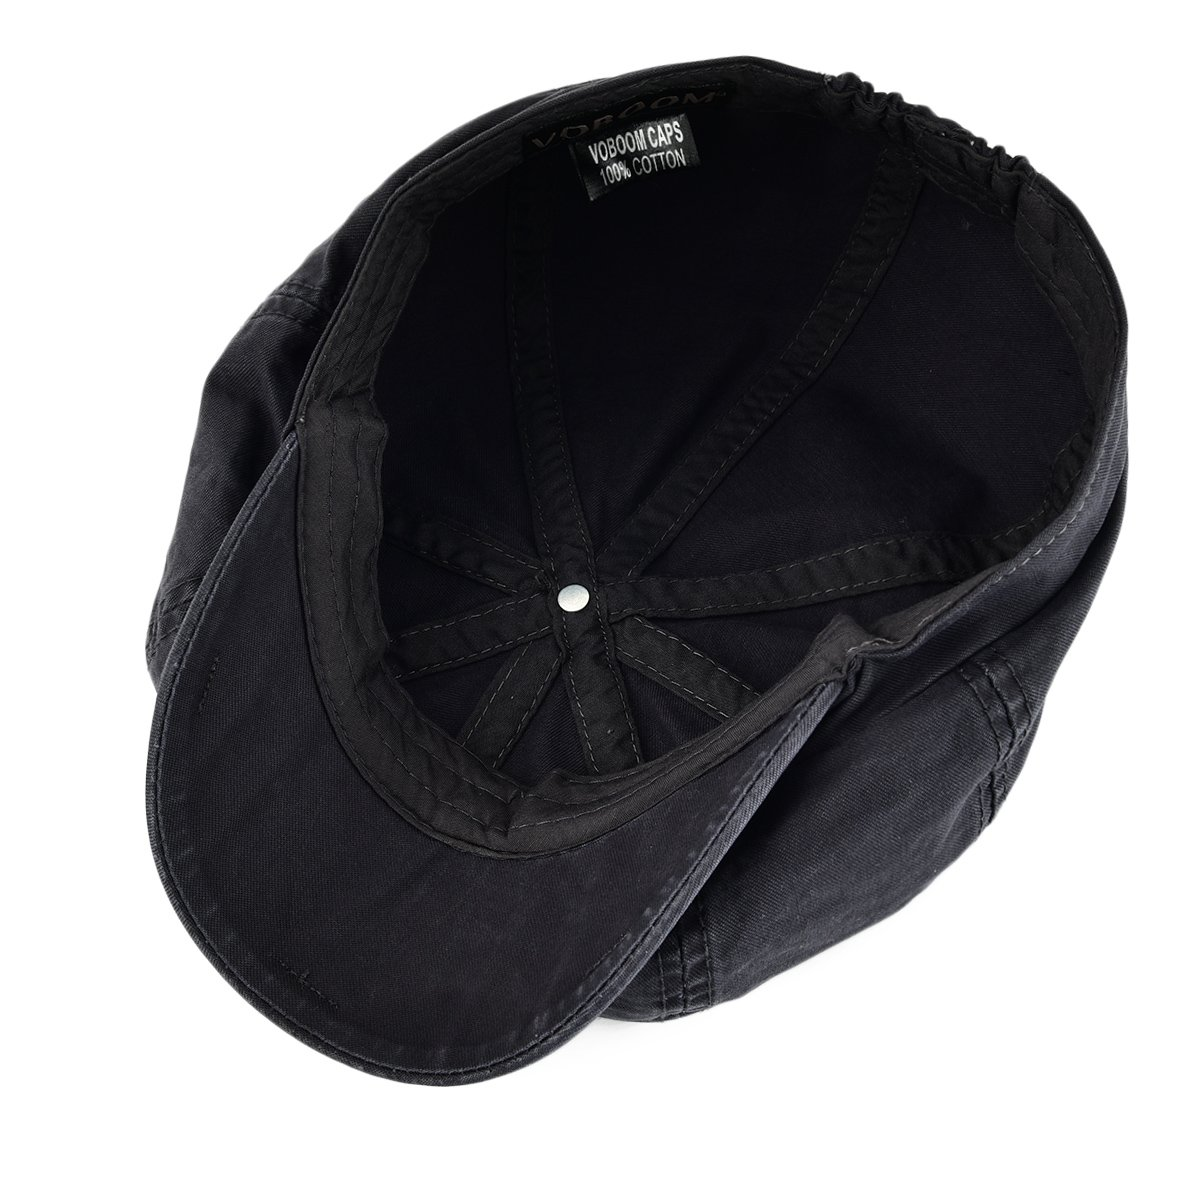 8d499dddfb0 VOBOOM 100% Cotton Newsboy Caps 8 Pannel Cabbie Hat Gatsby Hat  (S M 57-58cm 7 1 8-7 1 4